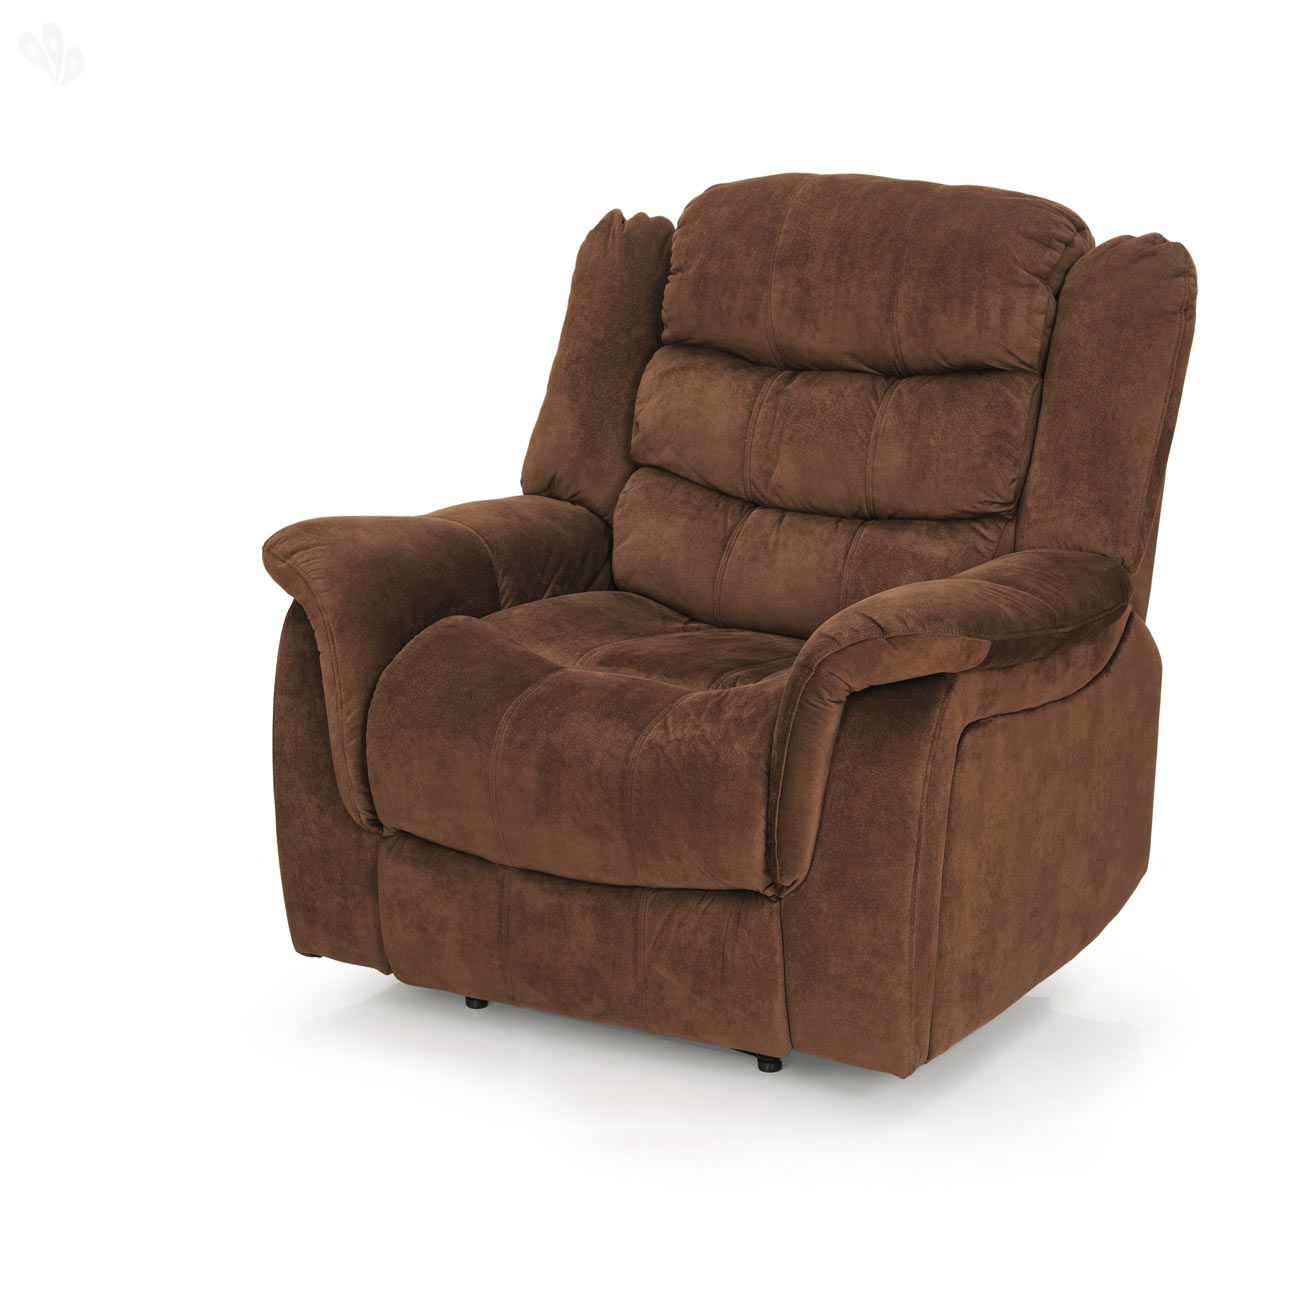 Royaloak Jasmine Recliner Single Seater Brown Online From India S Most Affordable Furniture Brand